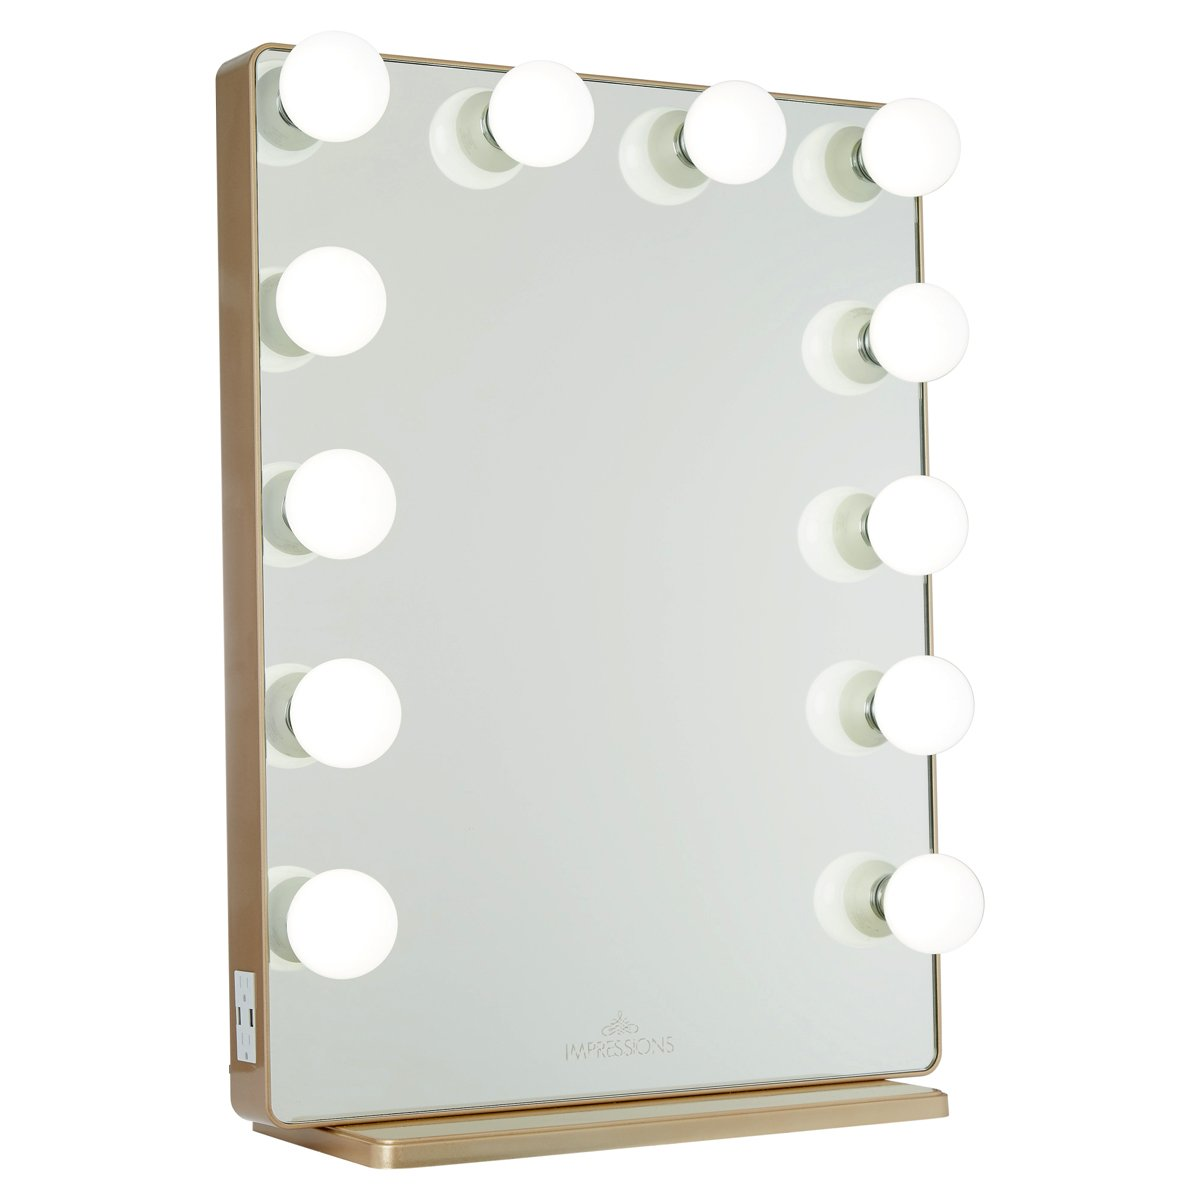 Champagne Gold Vanity Mirror w/ Frosted LED Light Bulbs